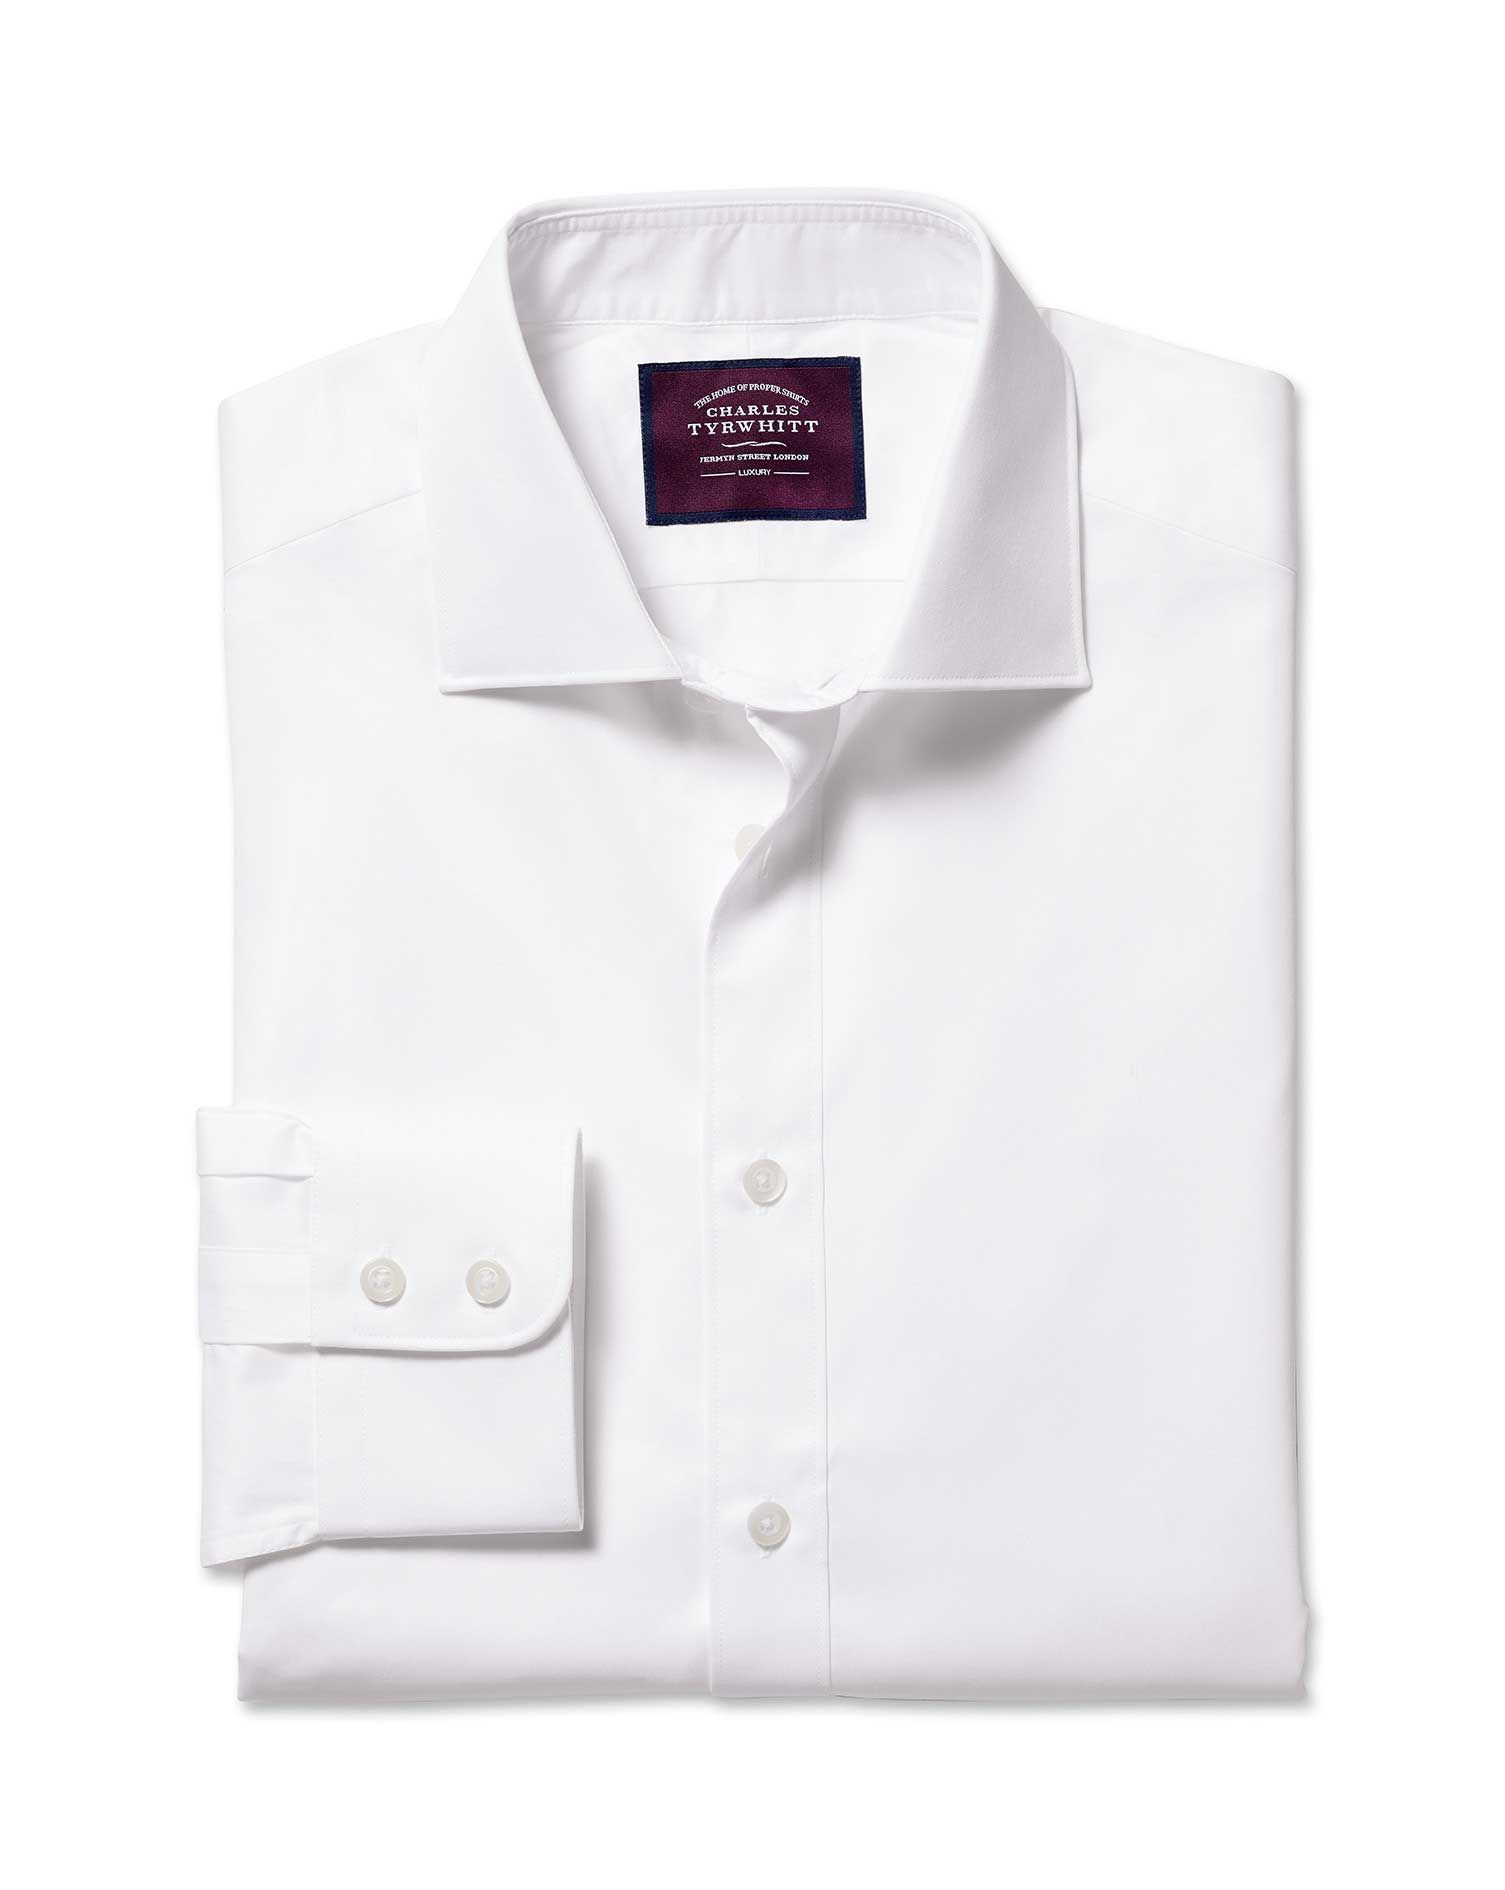 Classic Fit Semi-Cutaway Luxury Twill White Egyptian Cotton Formal Shirt Double Cuff Size 17.5/36 by